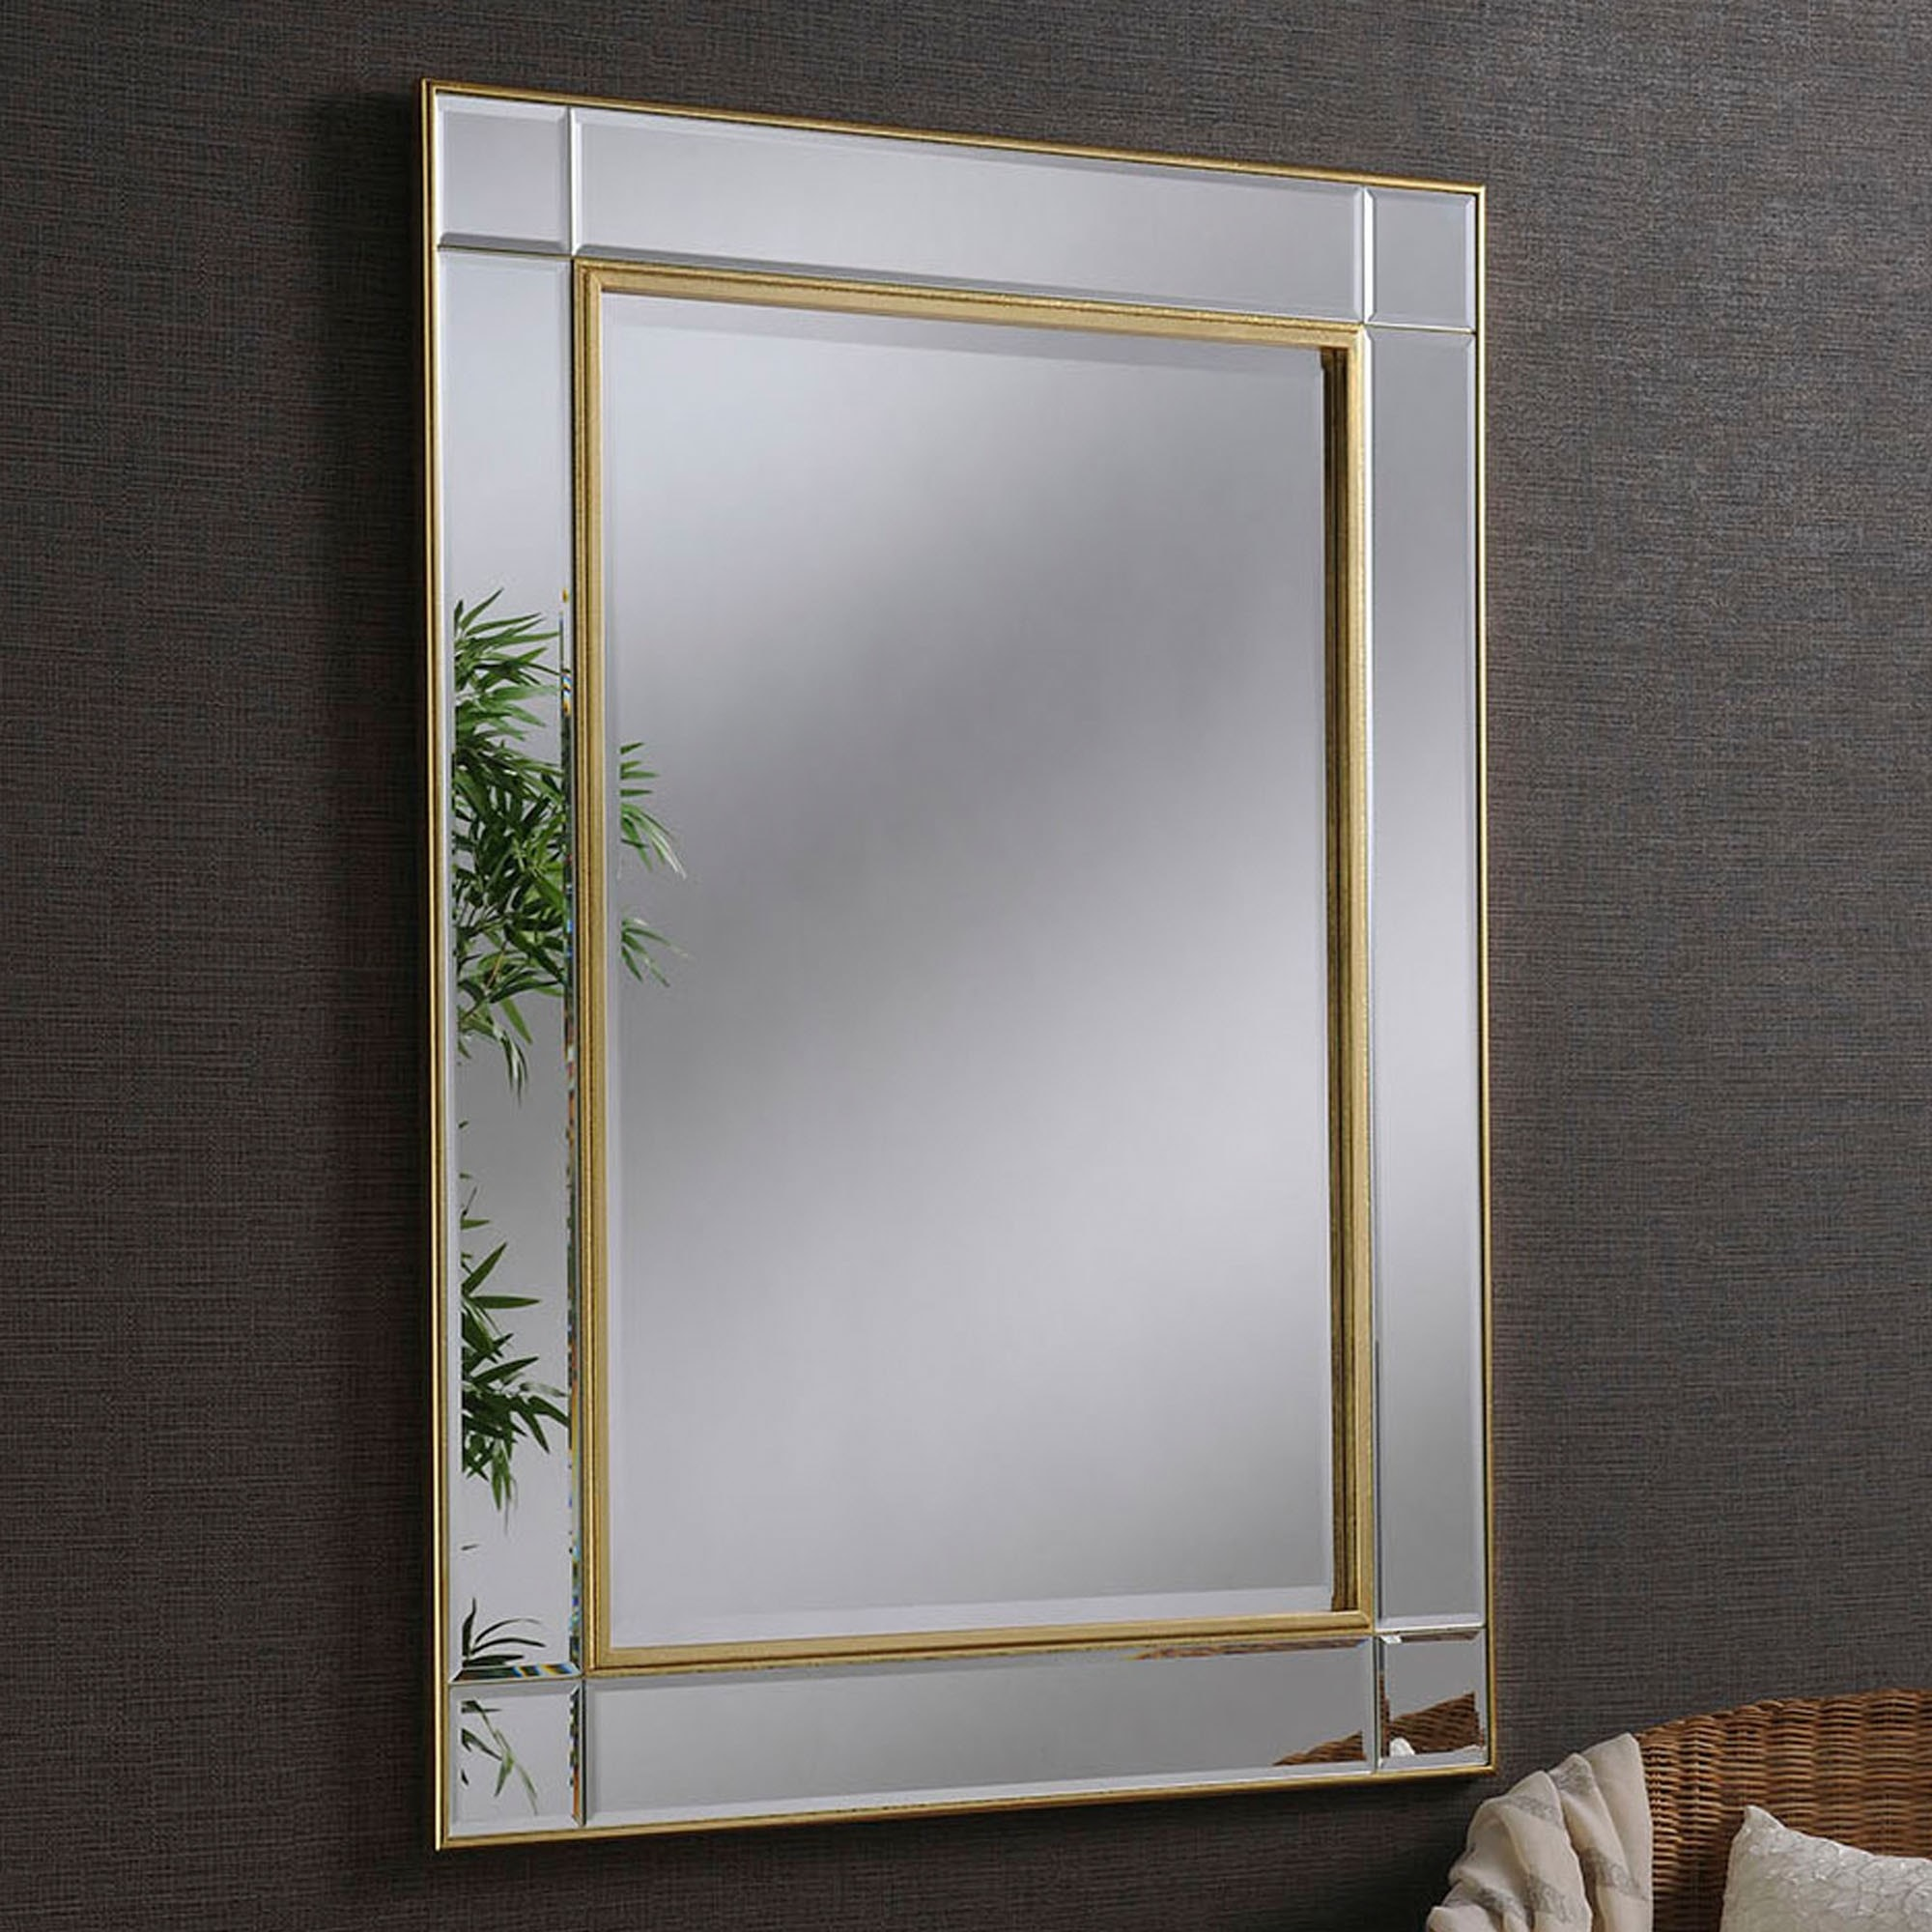 Contemporary Gold Beveled Wall Mirror | Contemporary Wall ...